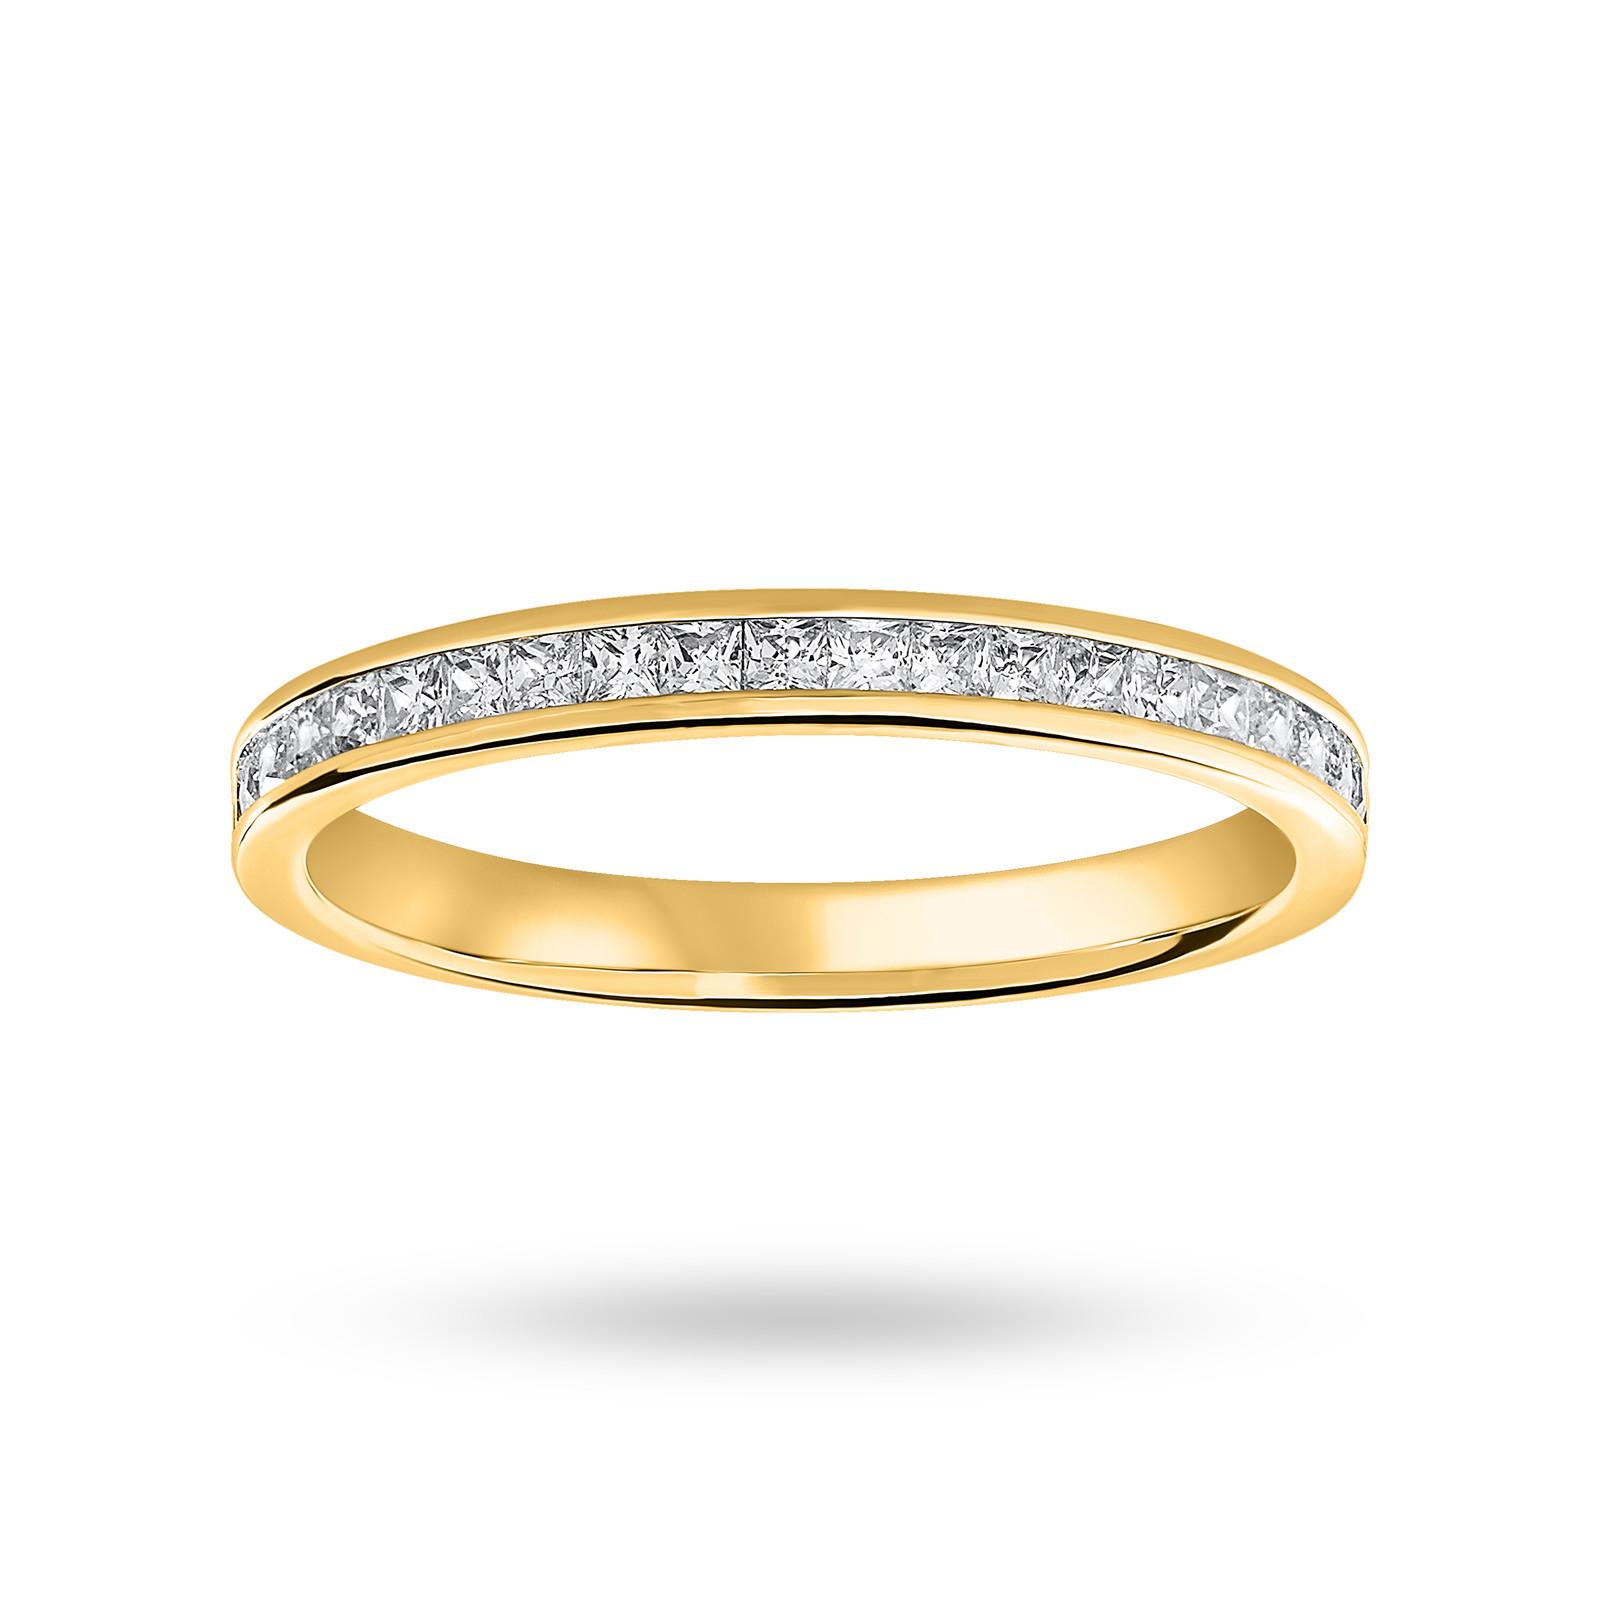 18ct Yellow Gold 0.33cttw Diamond Half Eternity Ring